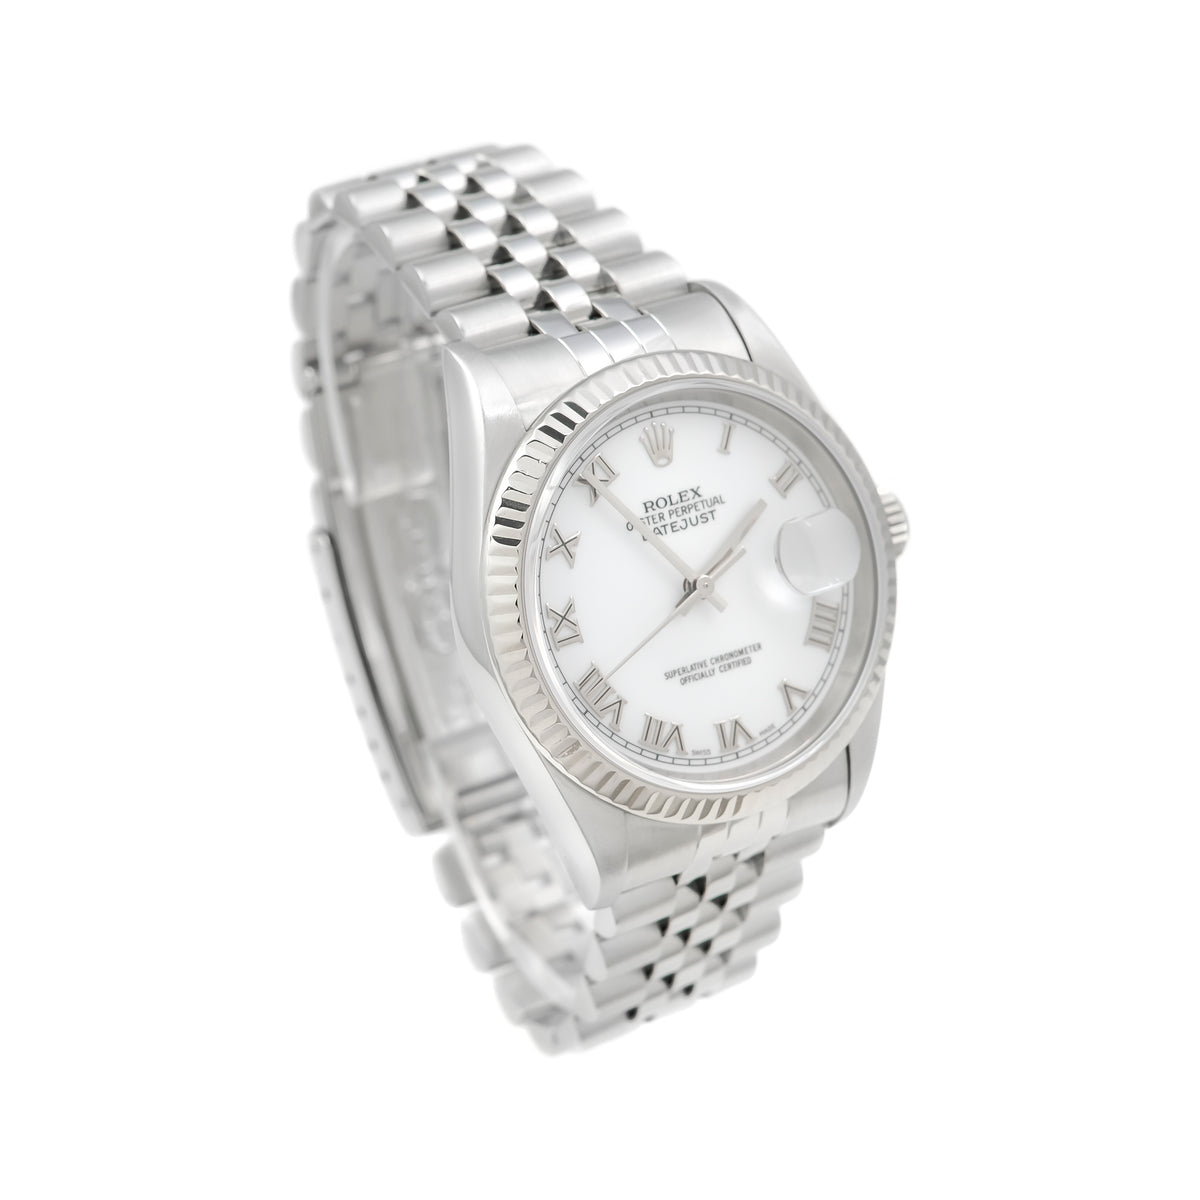 Rolex Datejust 36mm 16234